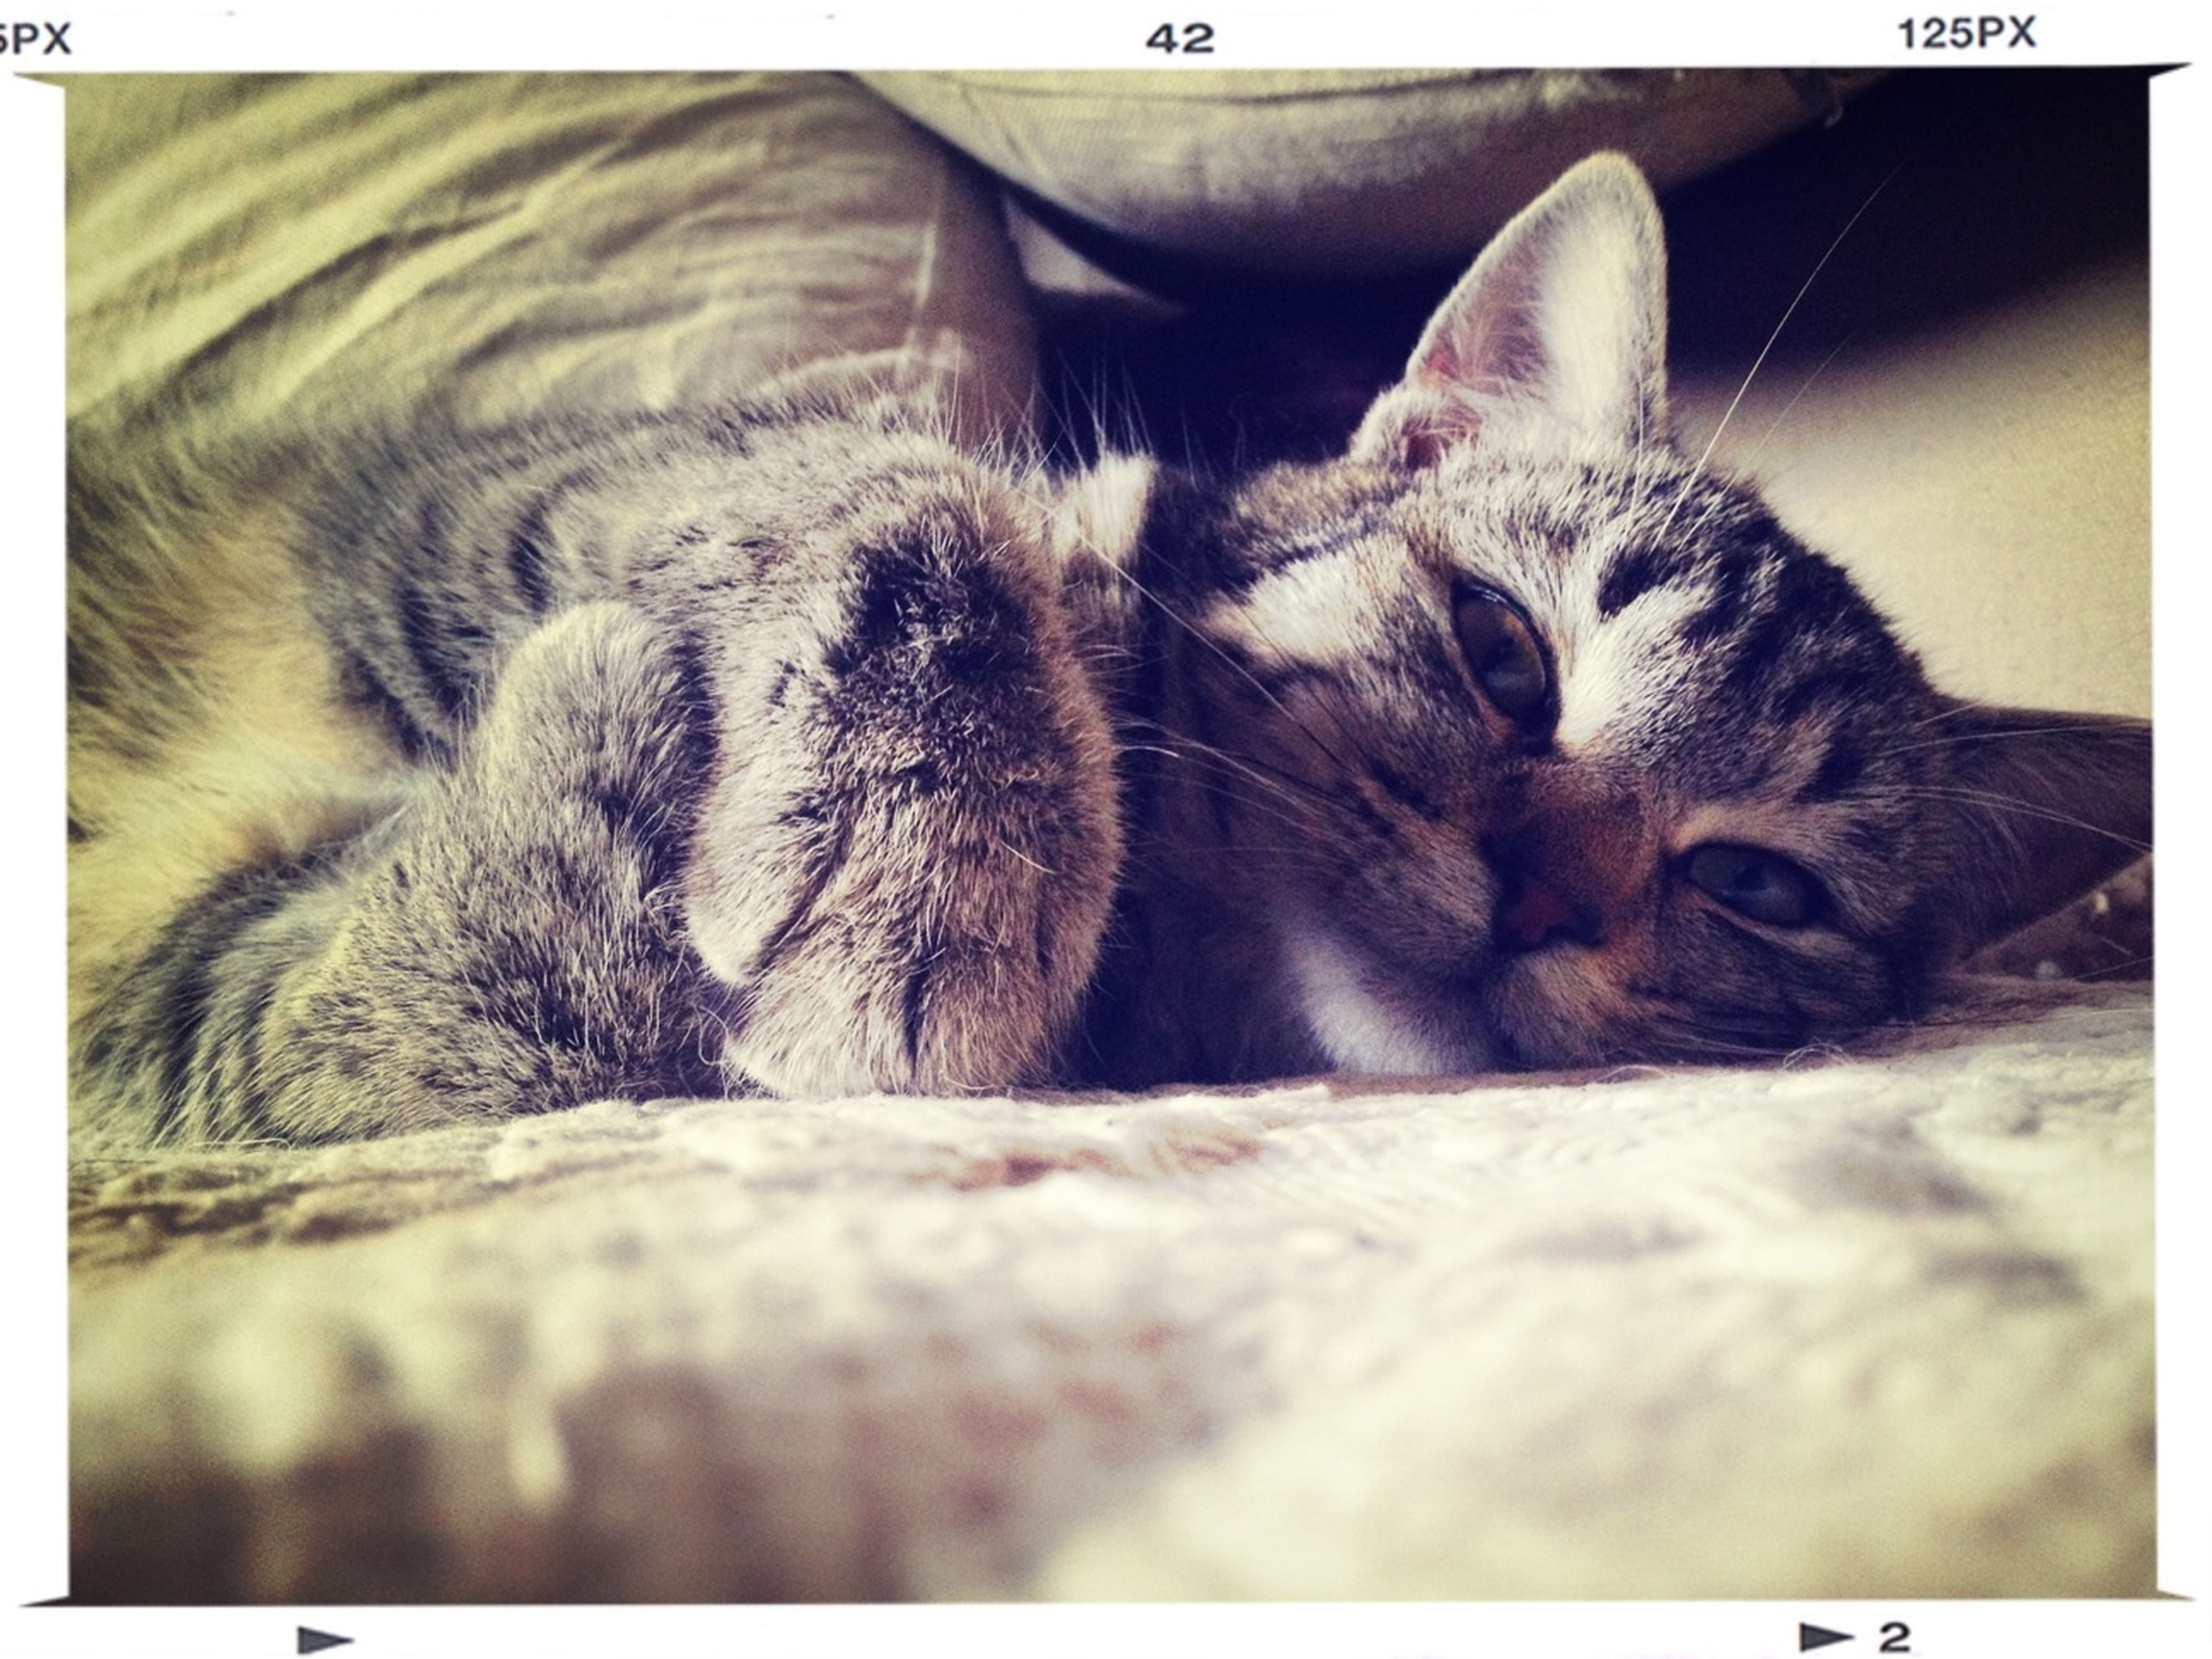 animal themes, pets, domestic cat, domestic animals, one animal, mammal, cat, transfer print, feline, relaxation, indoors, resting, lying down, sleeping, auto post production filter, whisker, close-up, animal head, eyes closed, animal